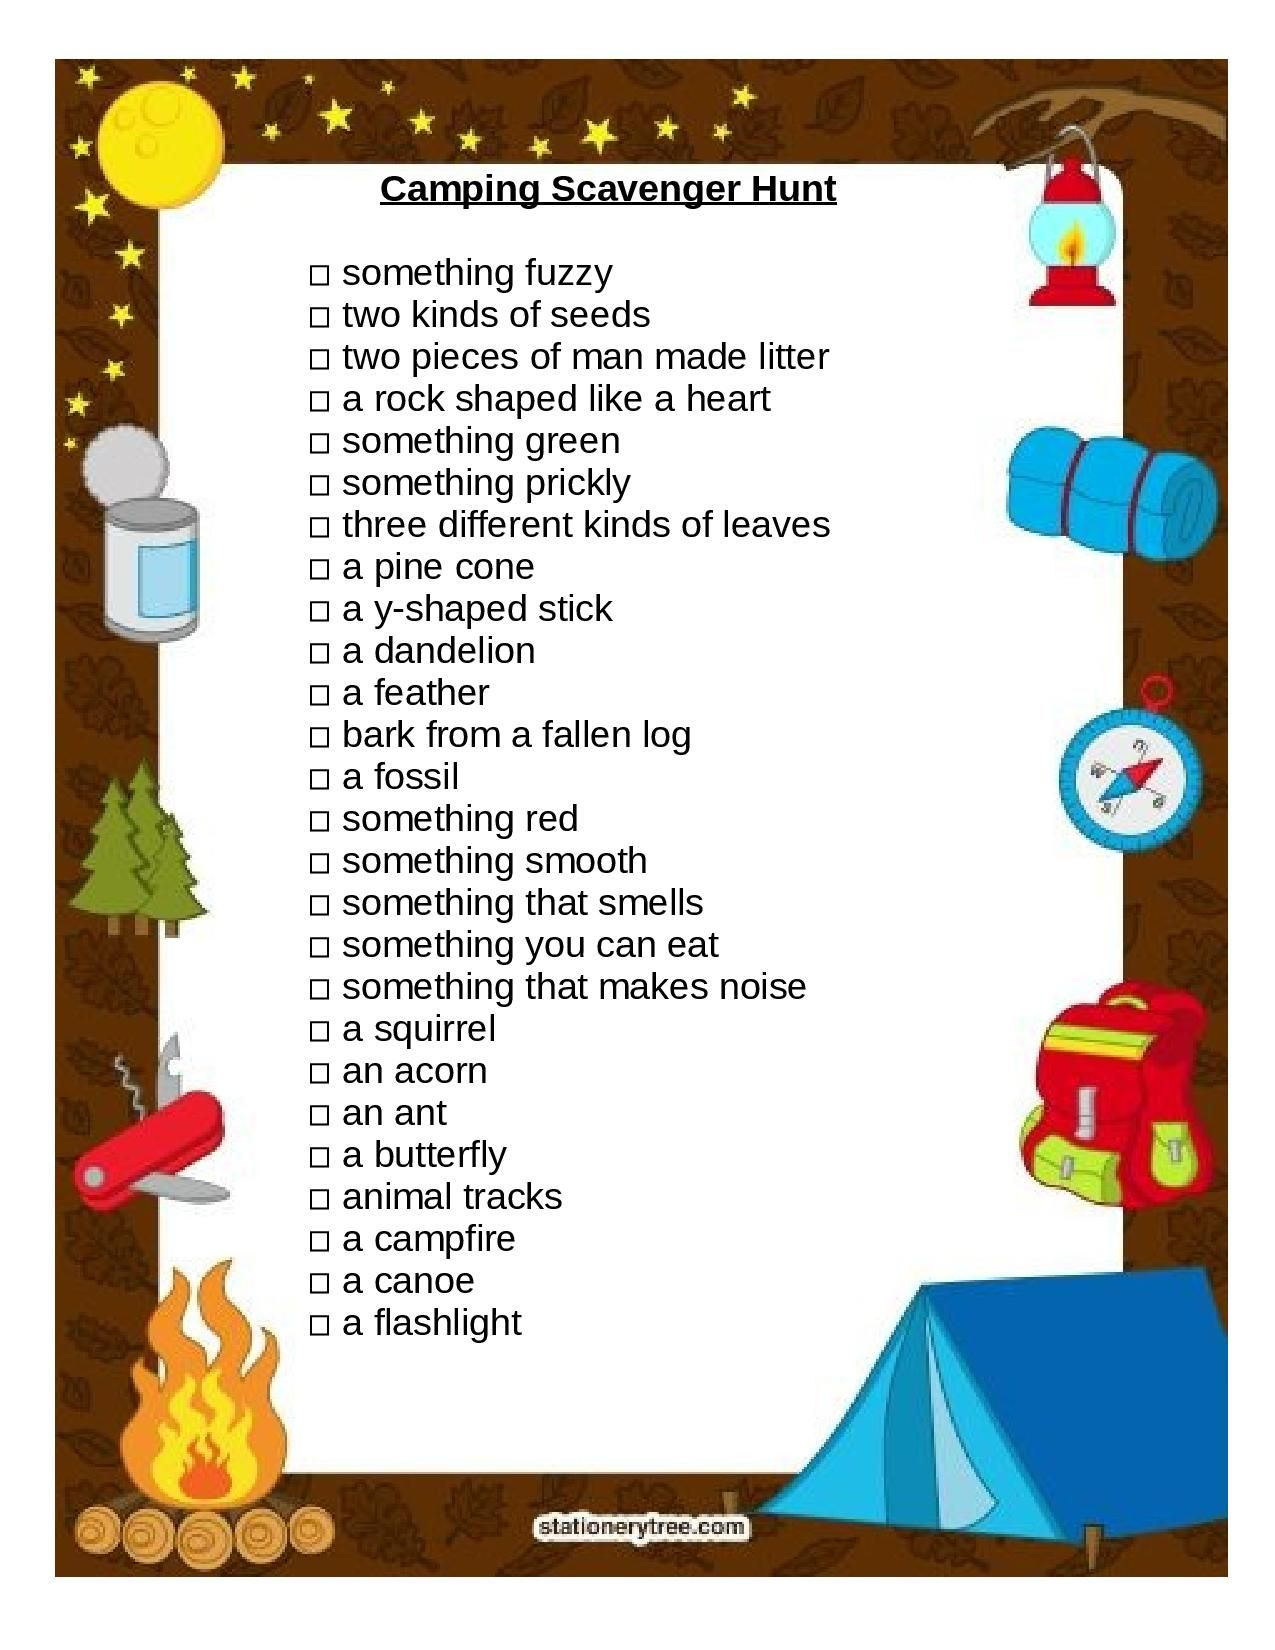 Scavenger Hunt I Made For Group Camping With Images